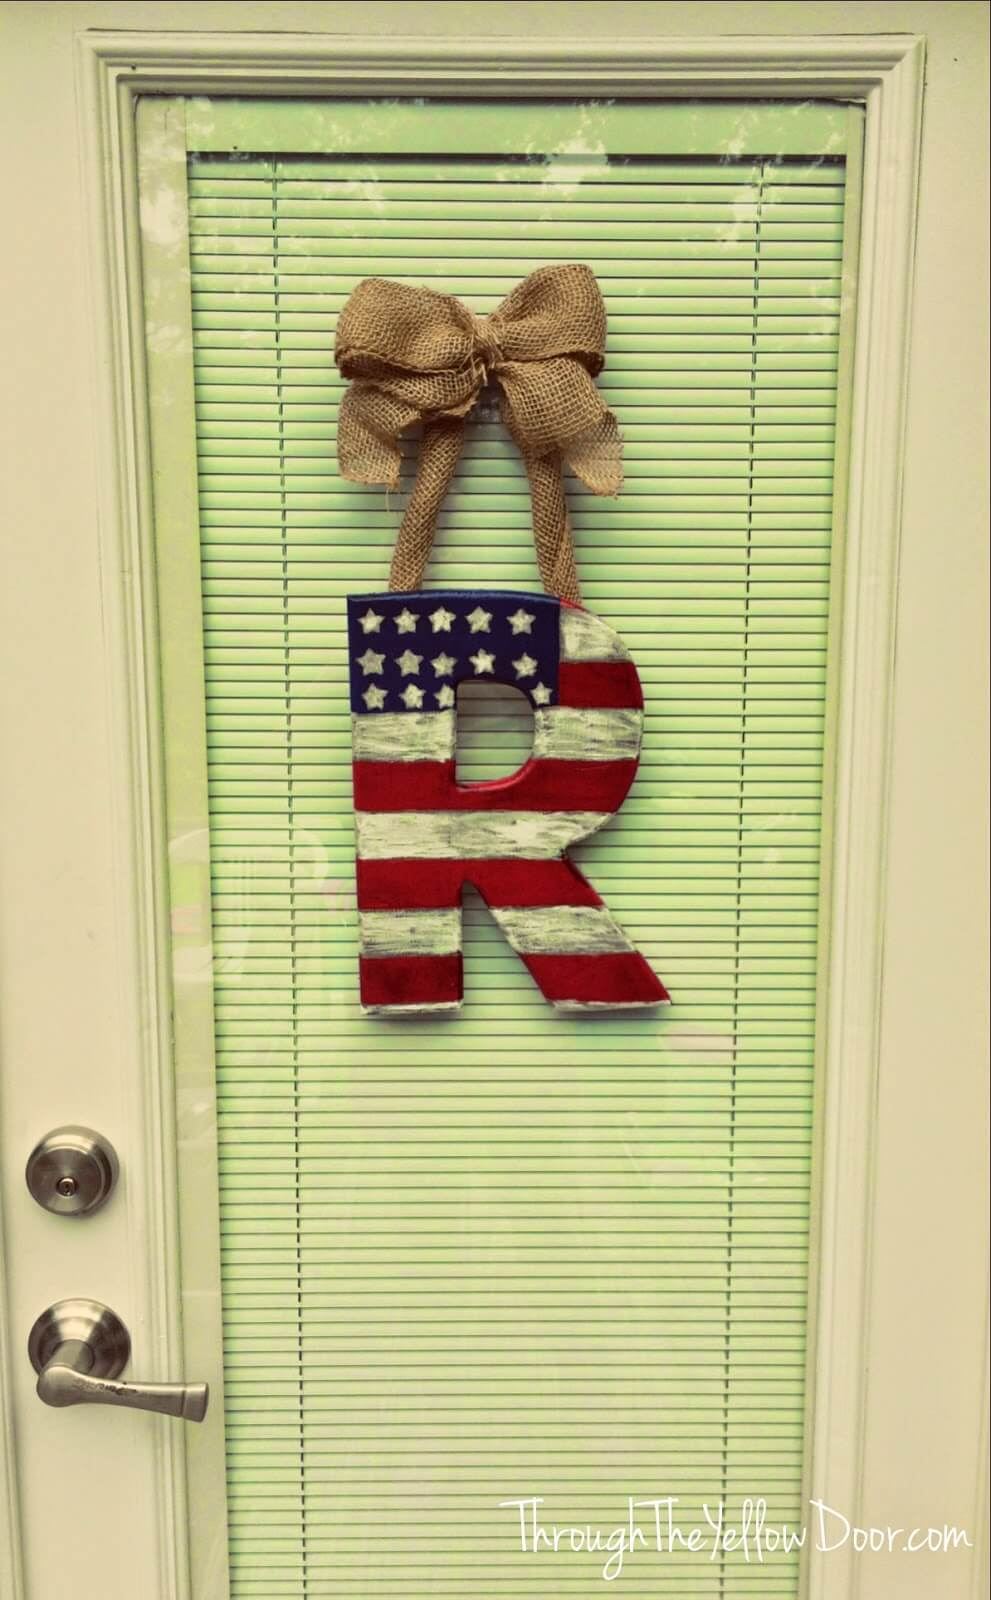 Patriotic Painted Wooden Letter DIY Rustic 4th of July Decoration